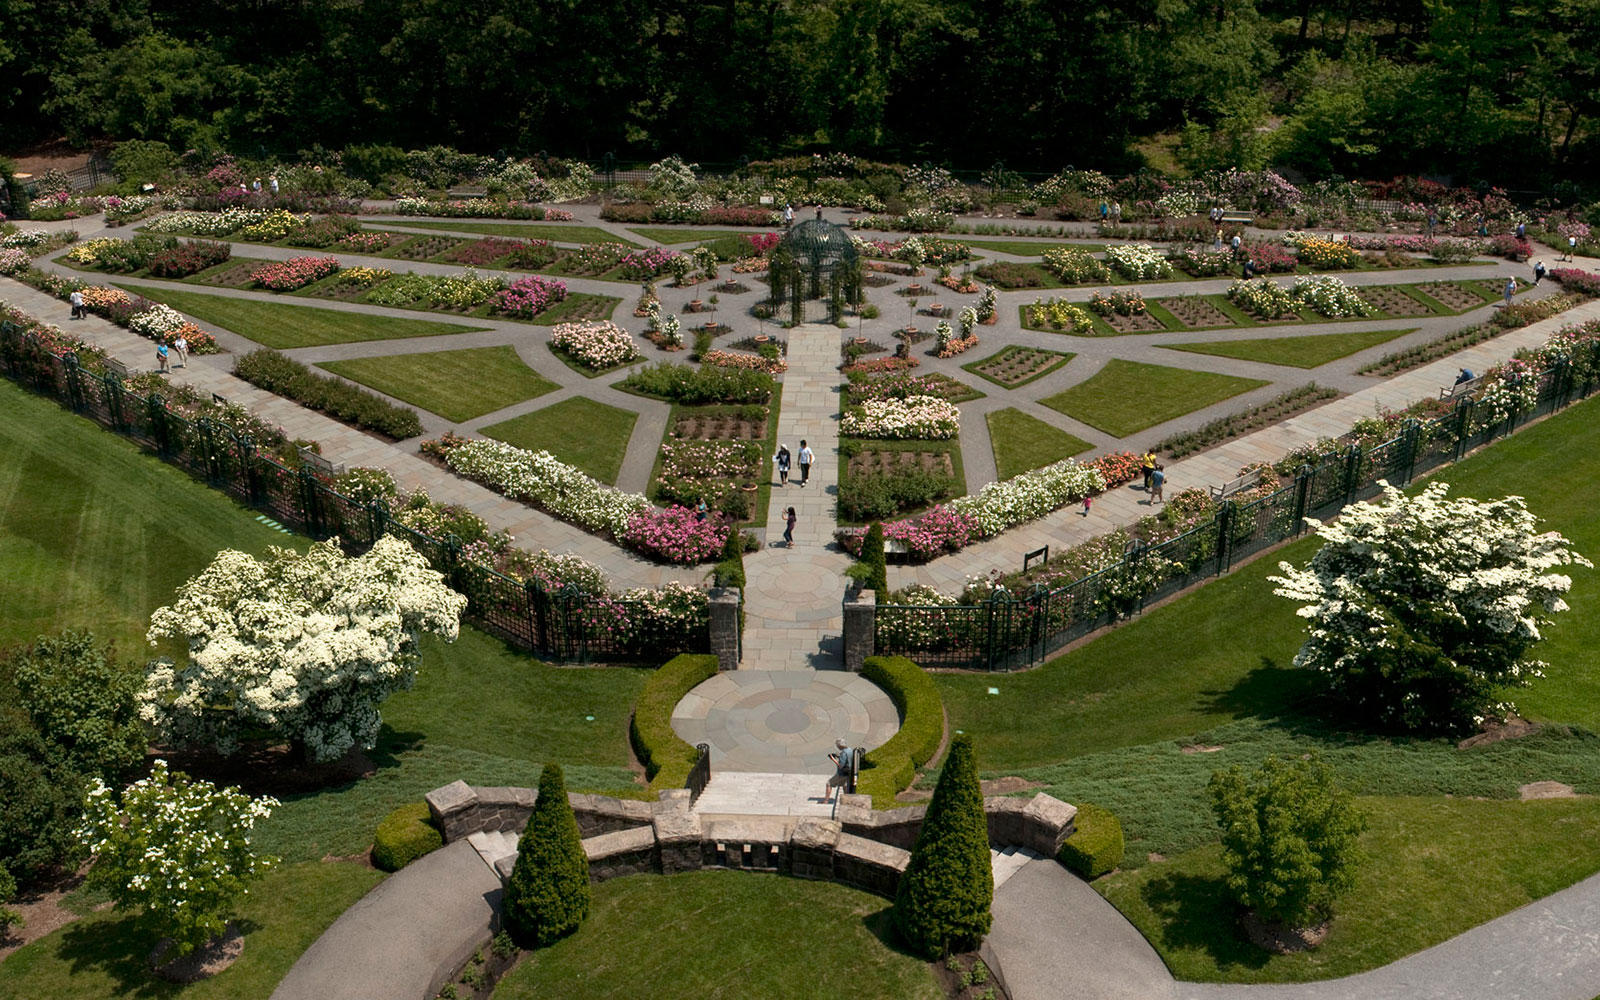 America's Most Beautiful Gardens: The New York Botanical Garden